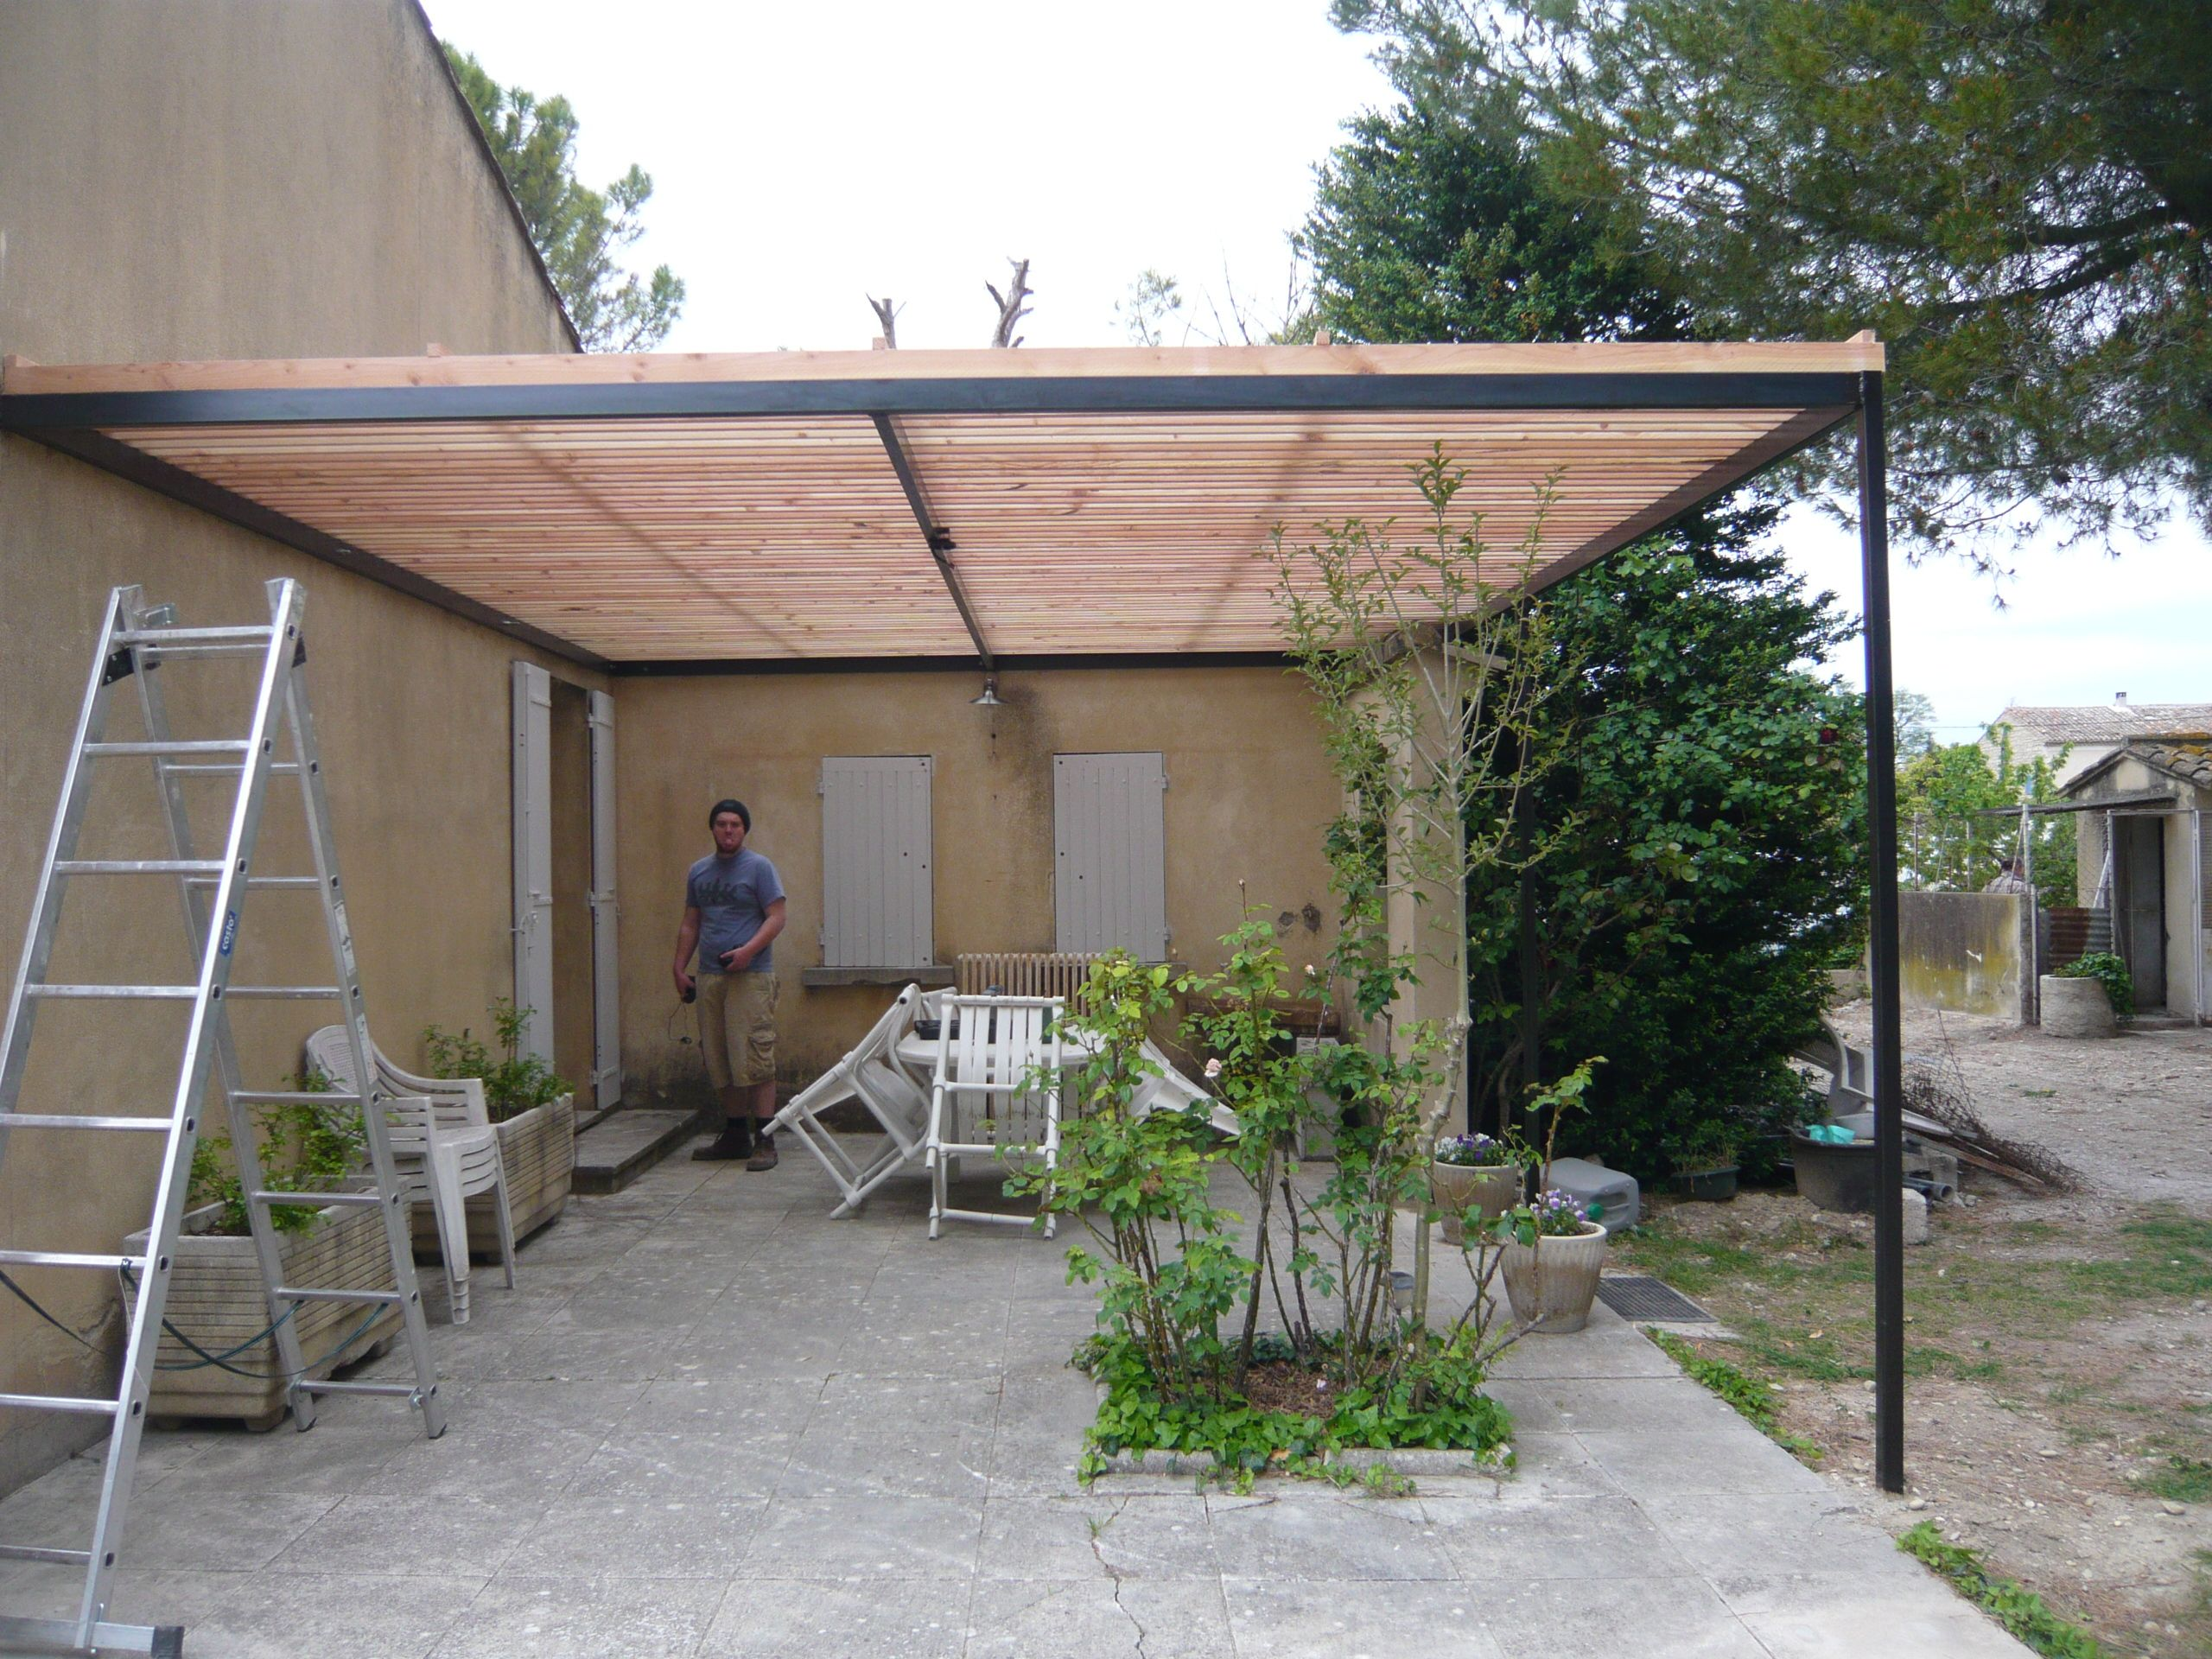 Pergola bois m tal instructions de montage do it yourself bosch au jardin en ext rieur - Modele de pergola ...